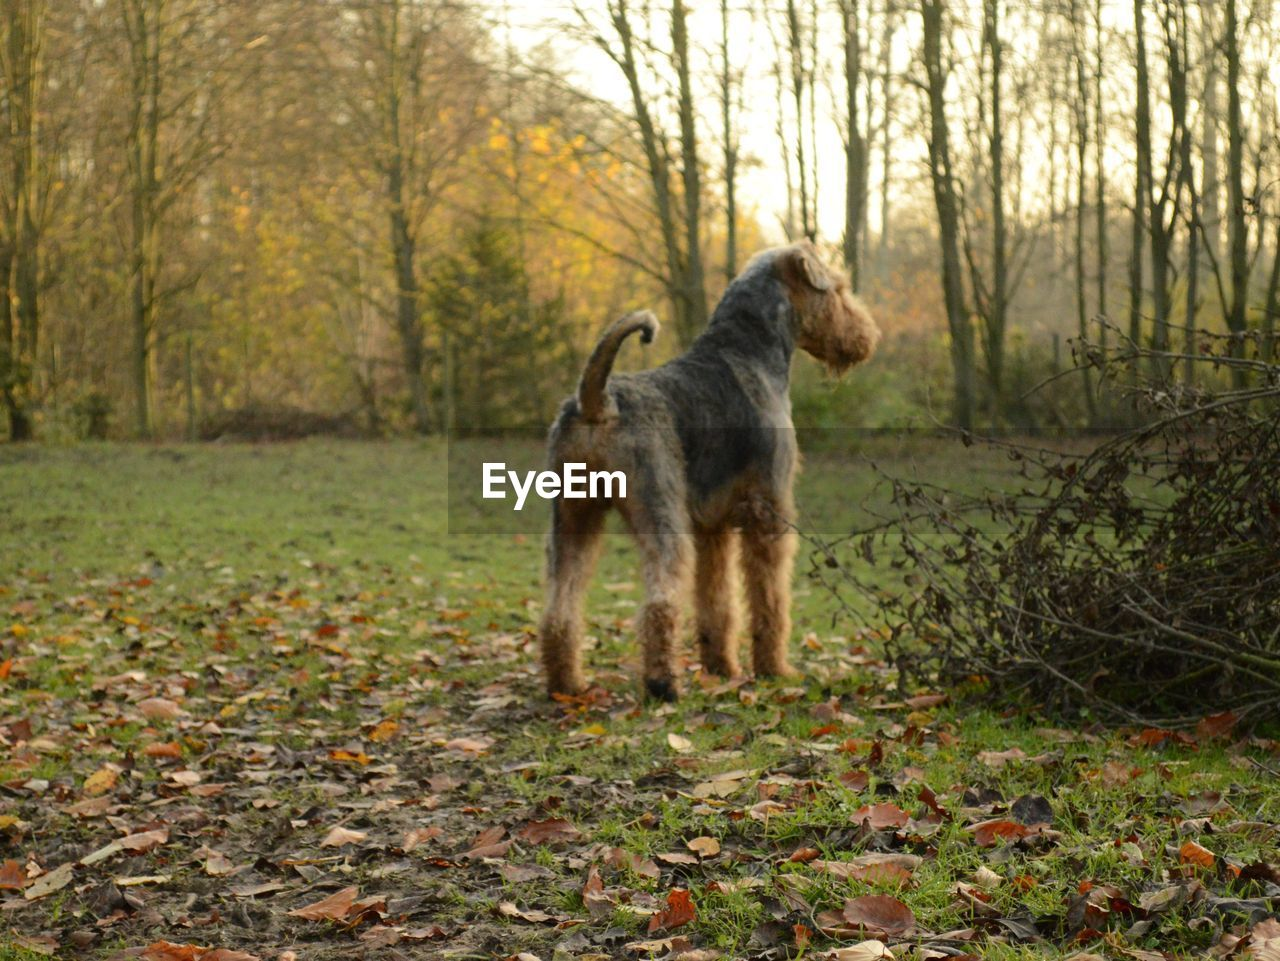 Dog standing on grassy field in forest